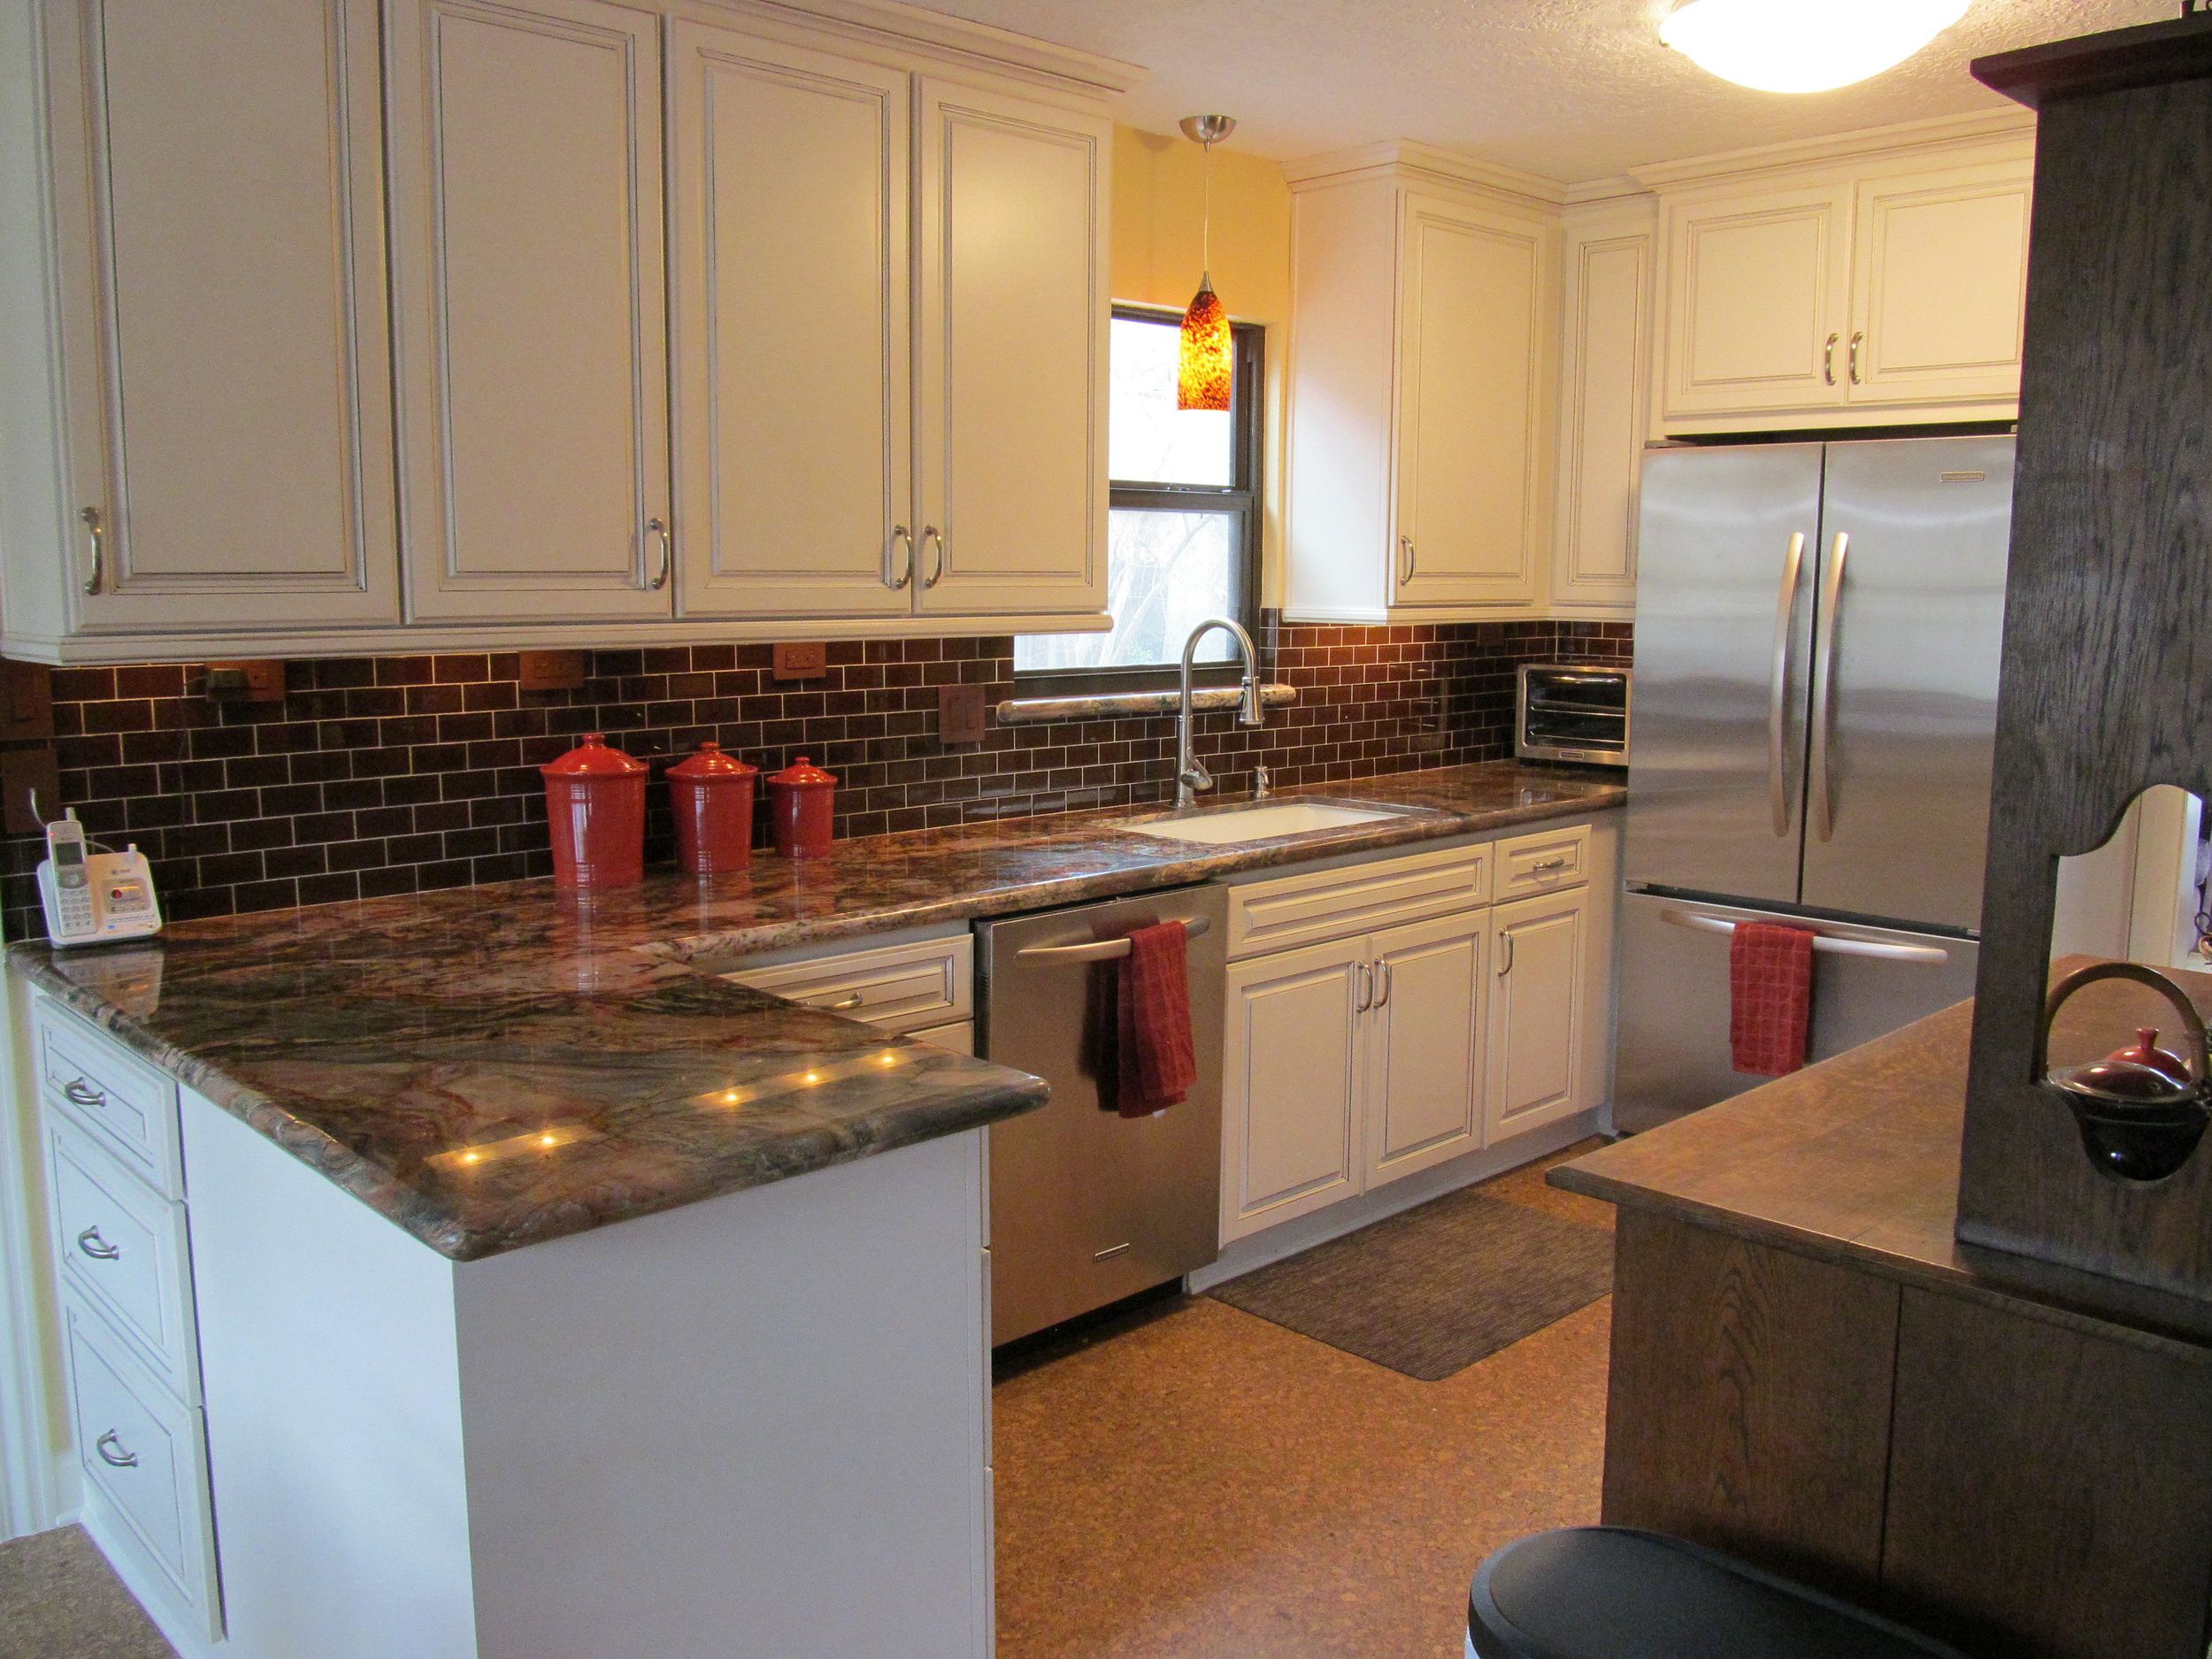 BRIARGROVE PARK KITCHEN -